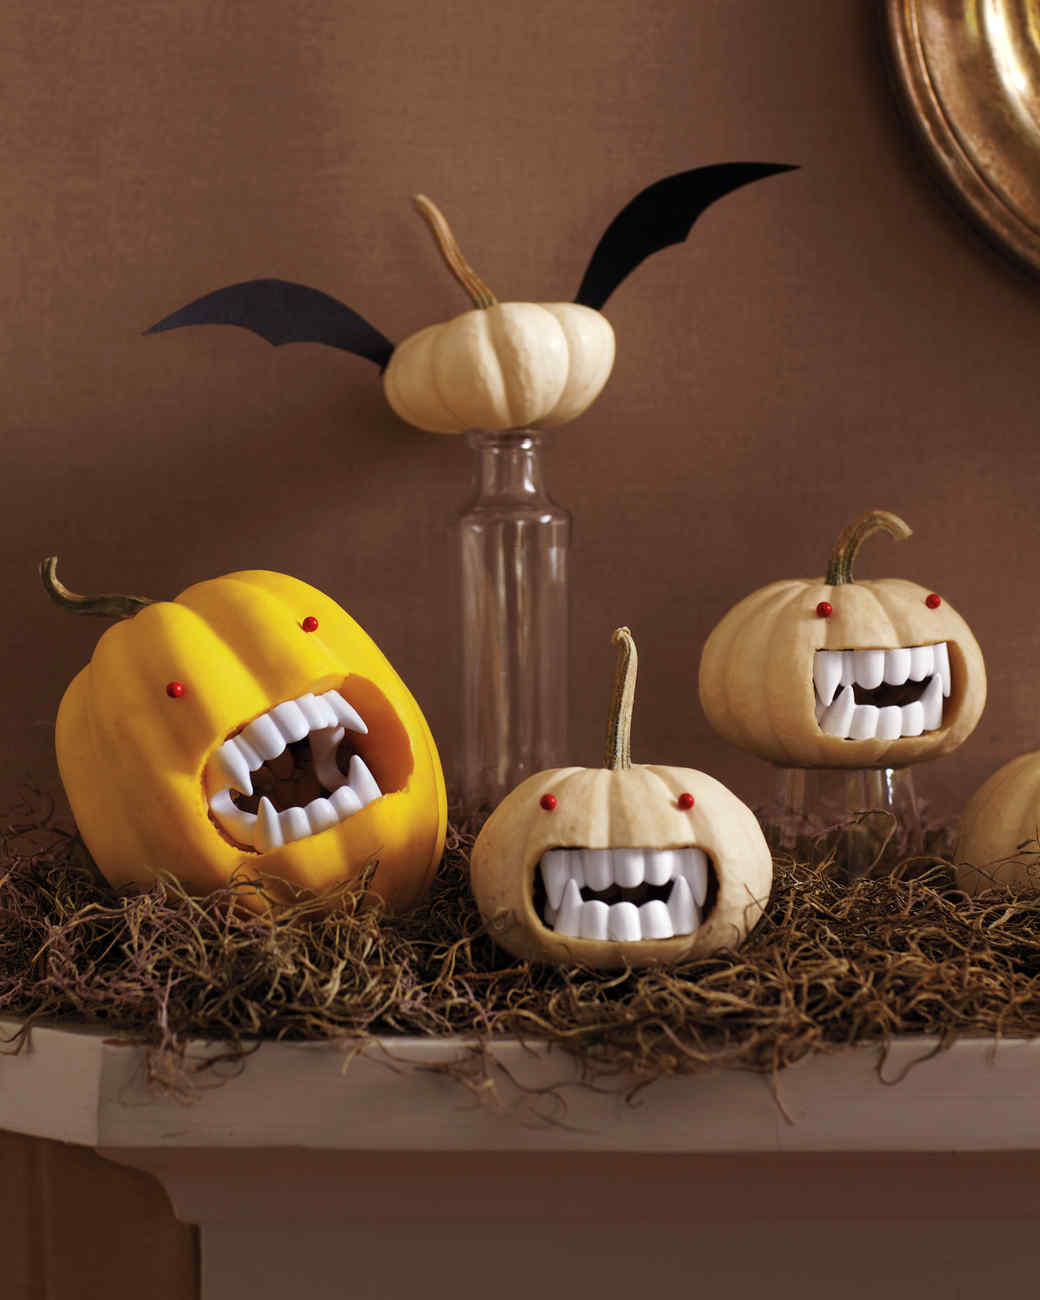 Pumpkin Carving and Decorating Ideas | Martha Stewart